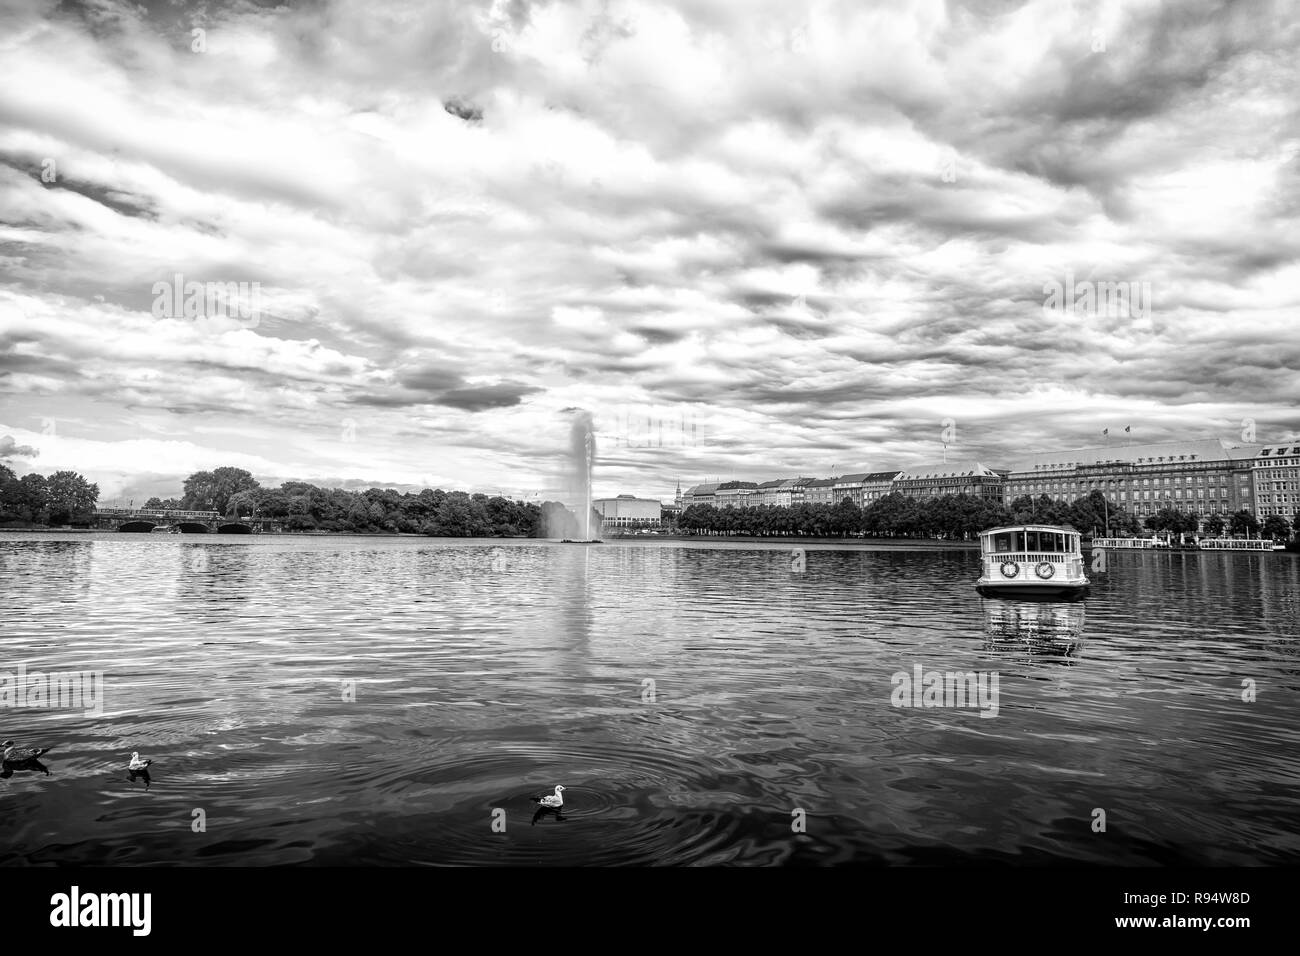 Lake with fountain in Hamburg city, Germany. Lake water on cloudy sky. Sightseeing landmark, attraction. Vacation travel wanderlust - Stock Image